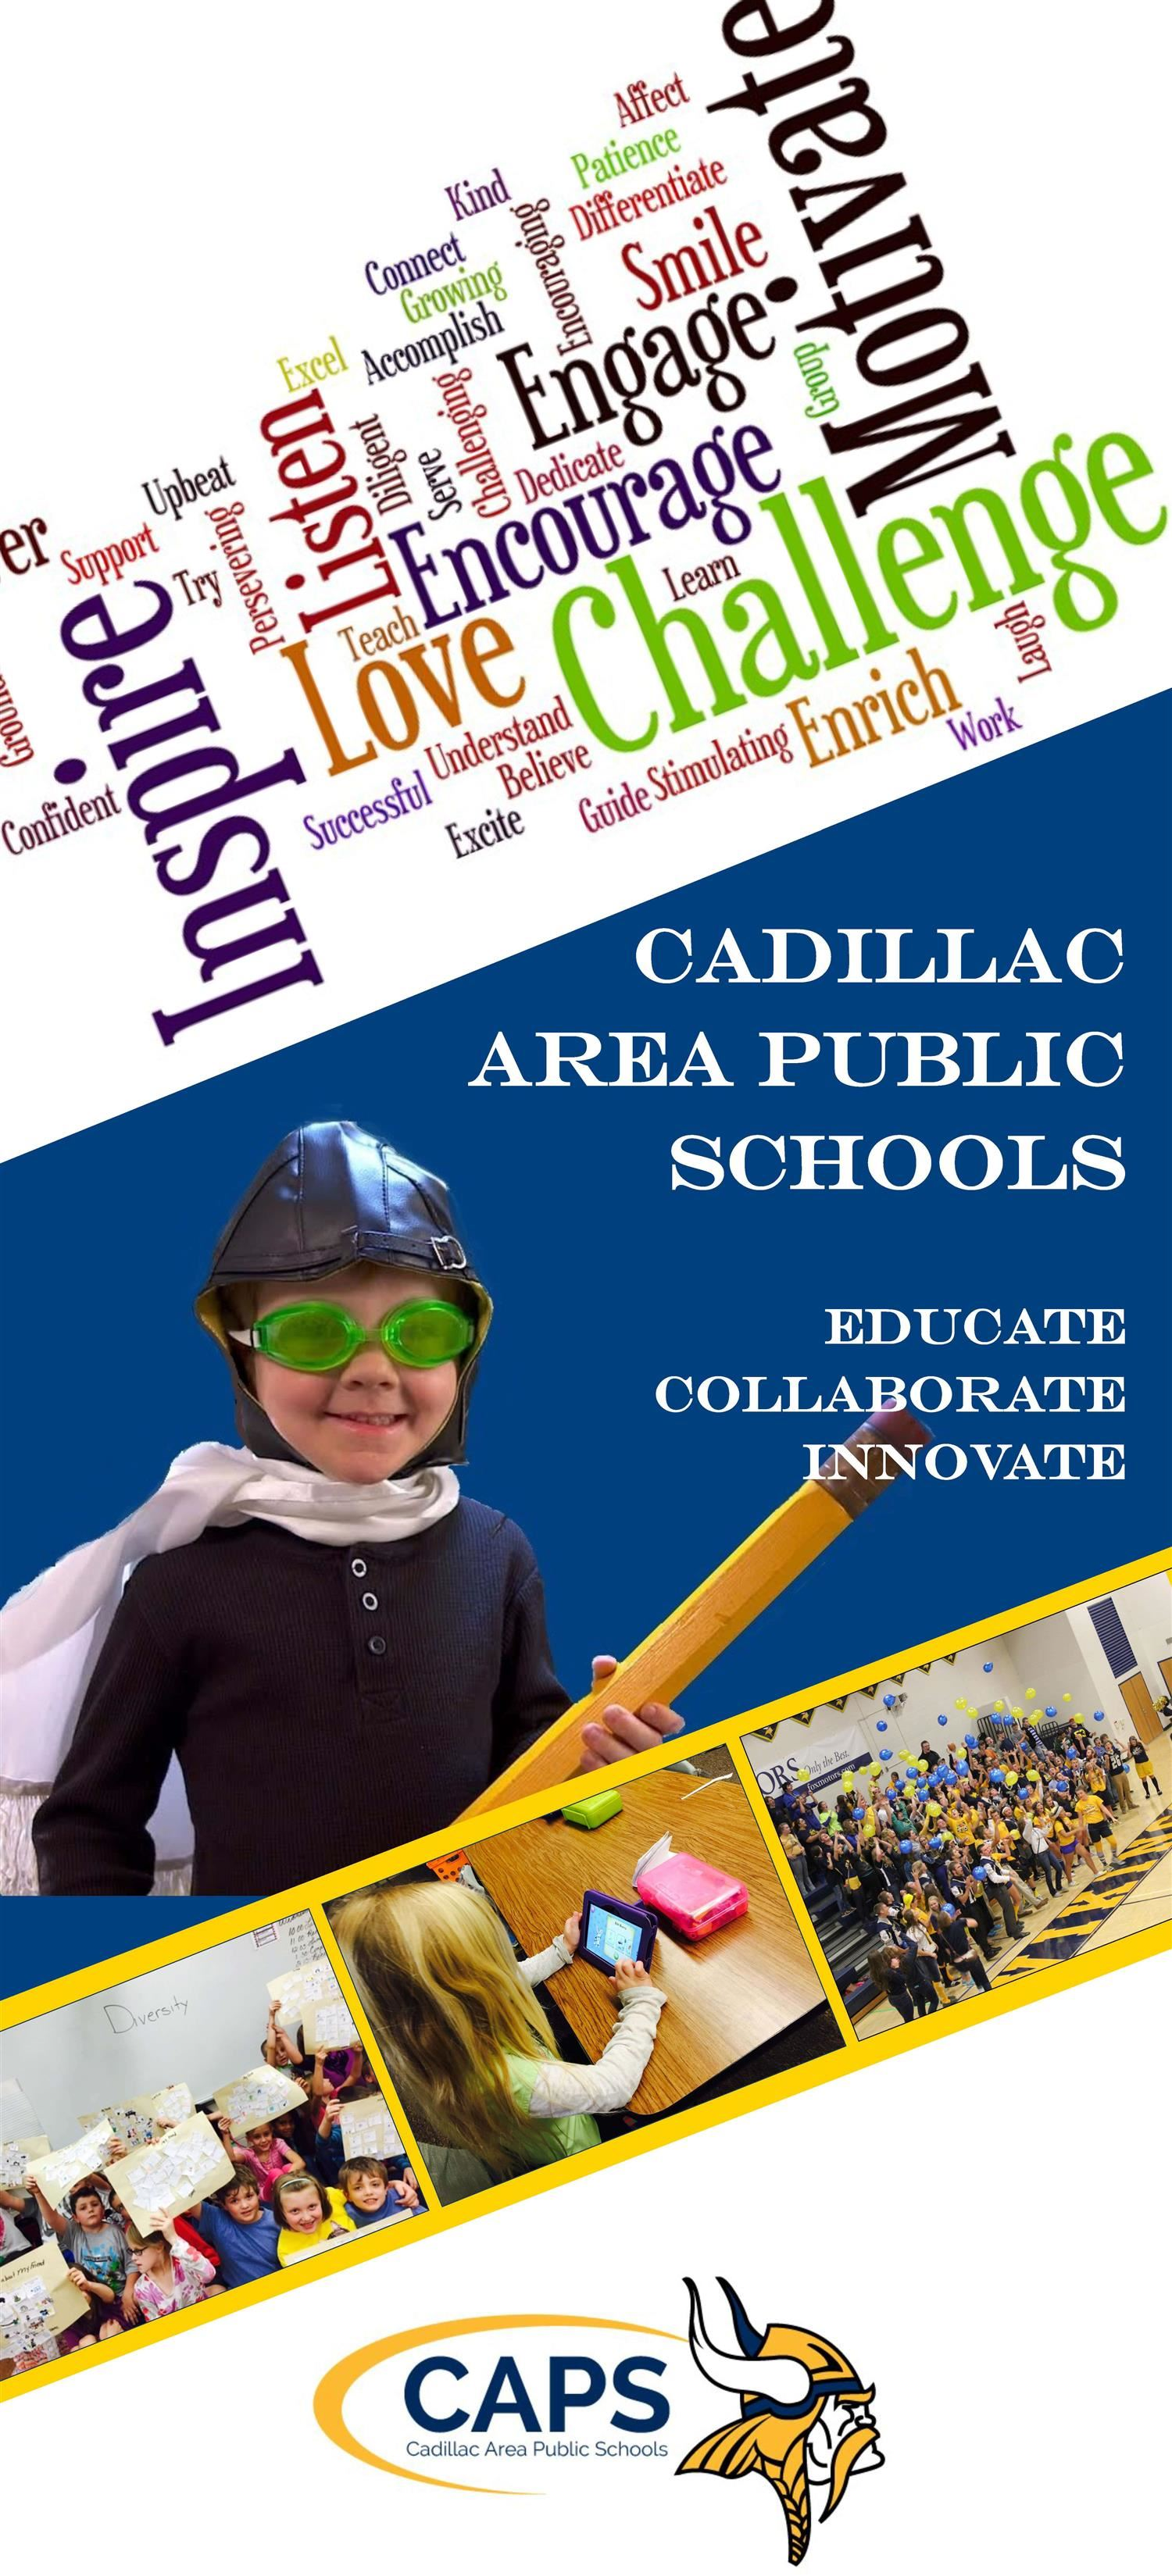 Aviator costume Cadillac Schools Banner image Education, Collaborate, Innovate, infograph says inspire, challenge, motivate,